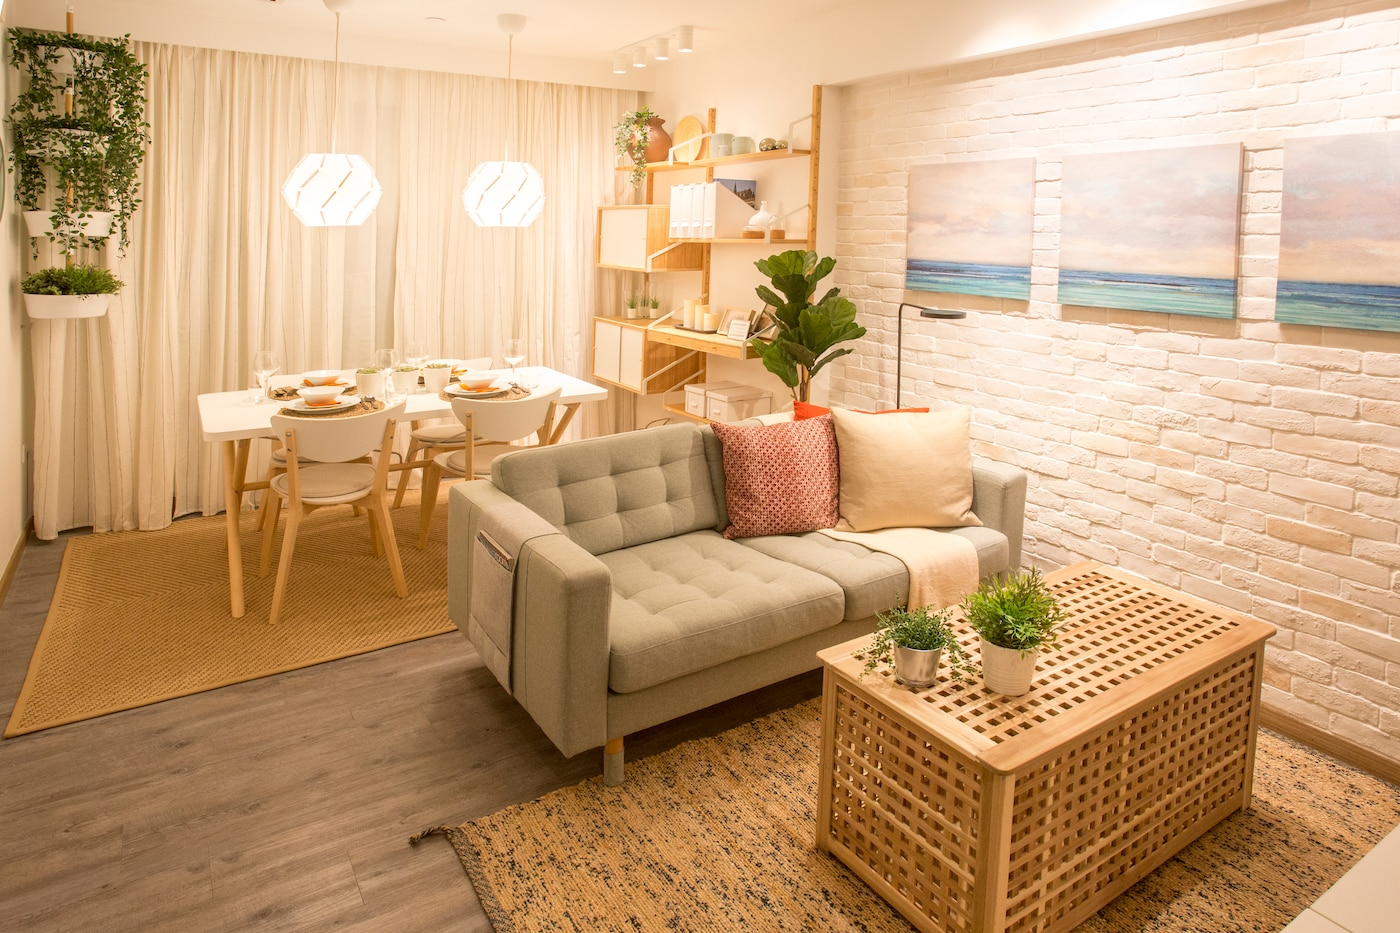 IKEA Home Furnishings takes on a 2 Room HDB Flat (Resort Theme) in Singapore.